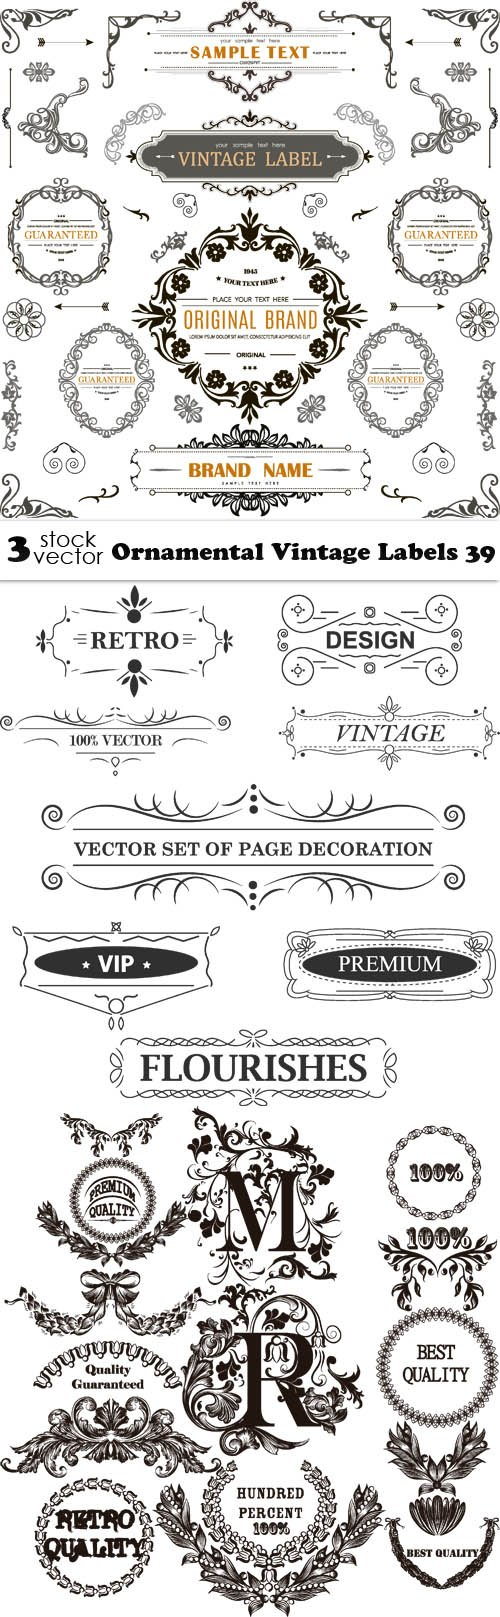 Vectors - Ornamental Vintage Labels 39